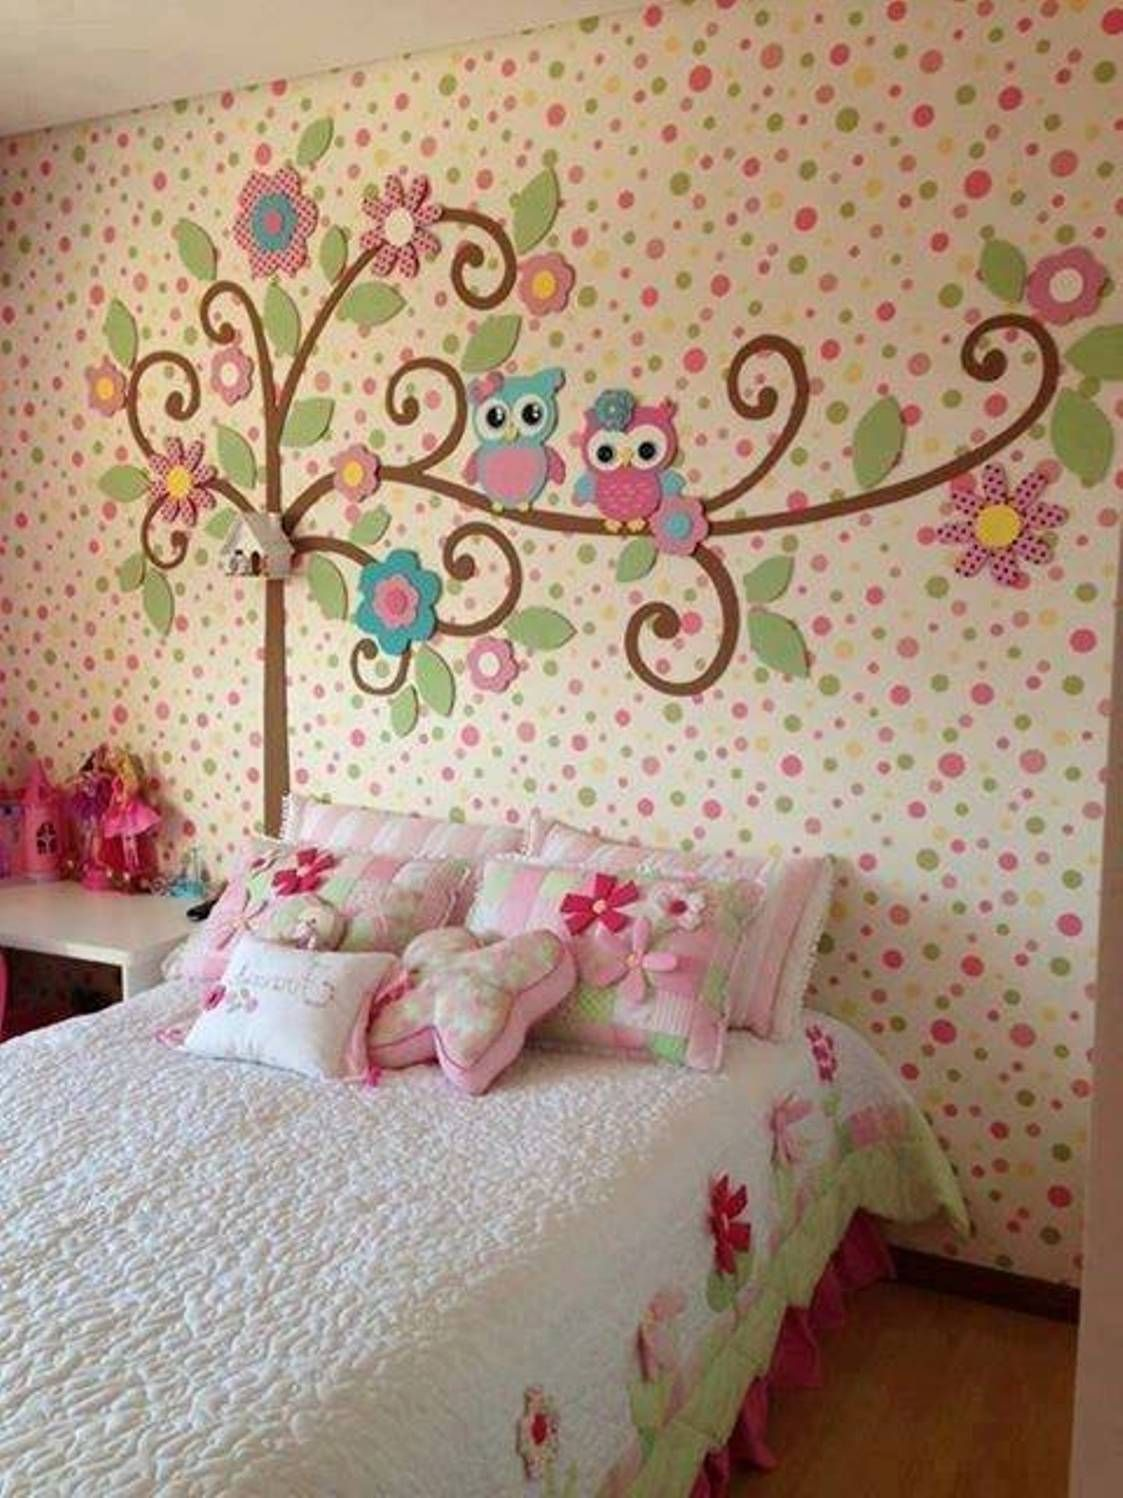 Cute girls bedroom design little girls bedroom design for Pretty bedroom accessories